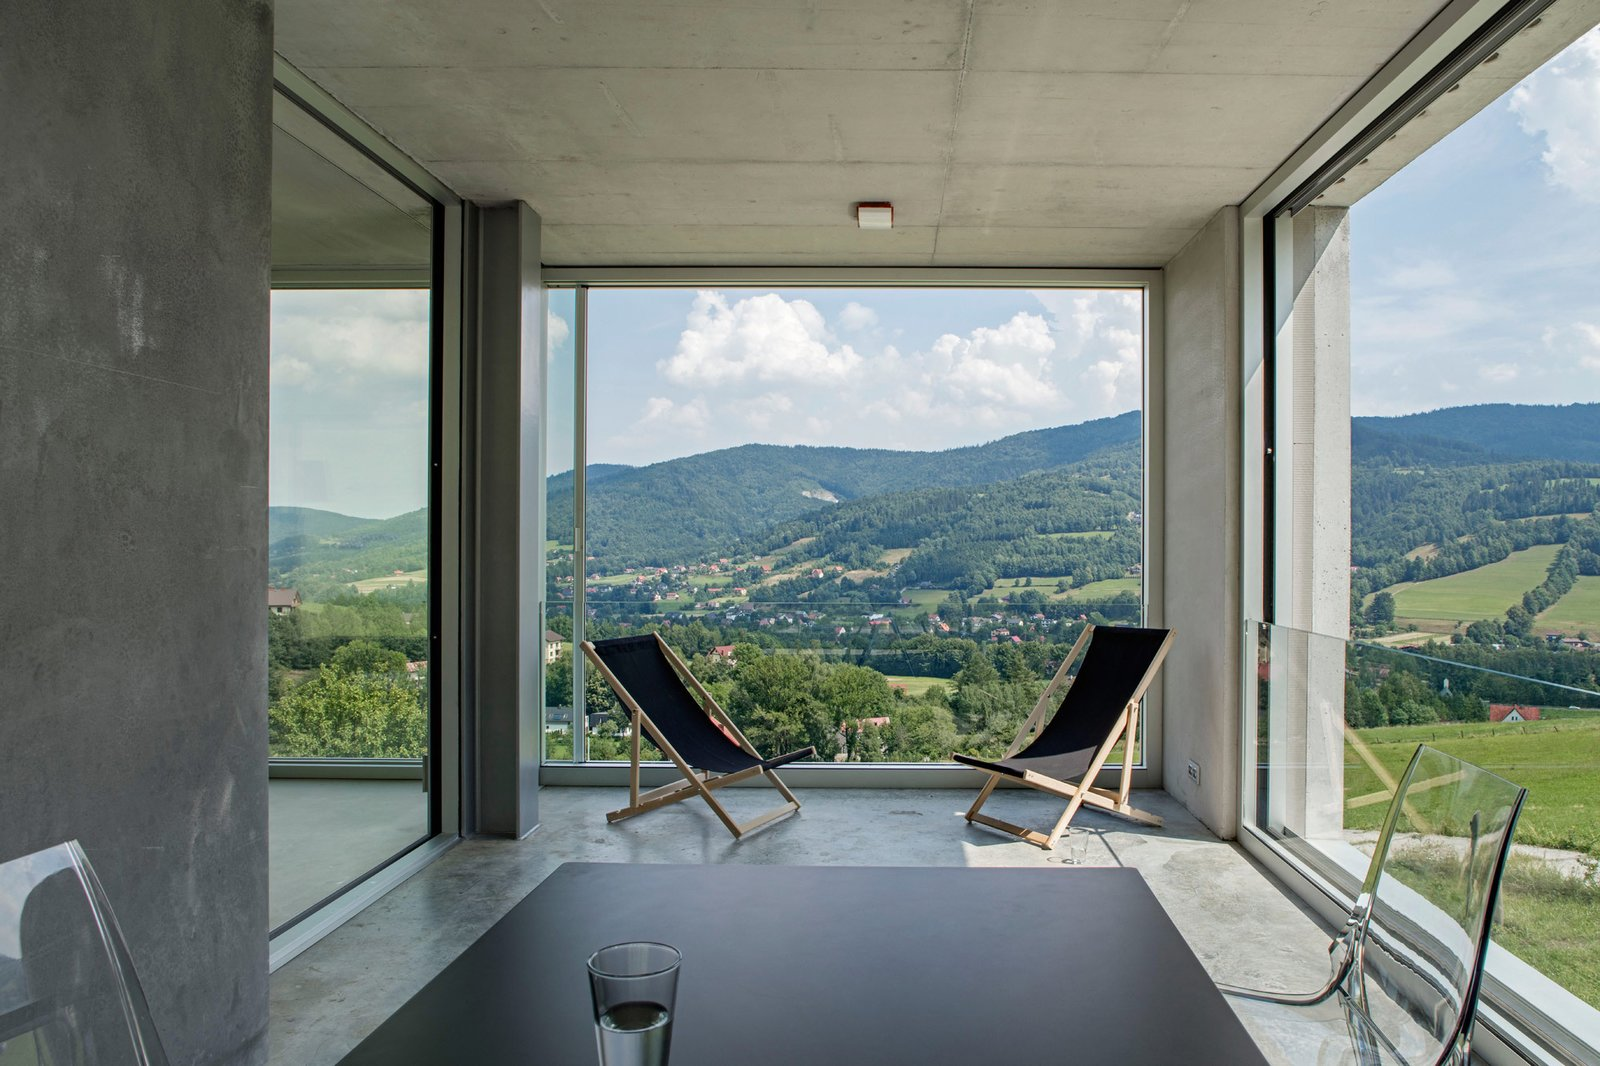 Photo 6 of 8 in A Striking Modern House Built In A Pastoral Landscape